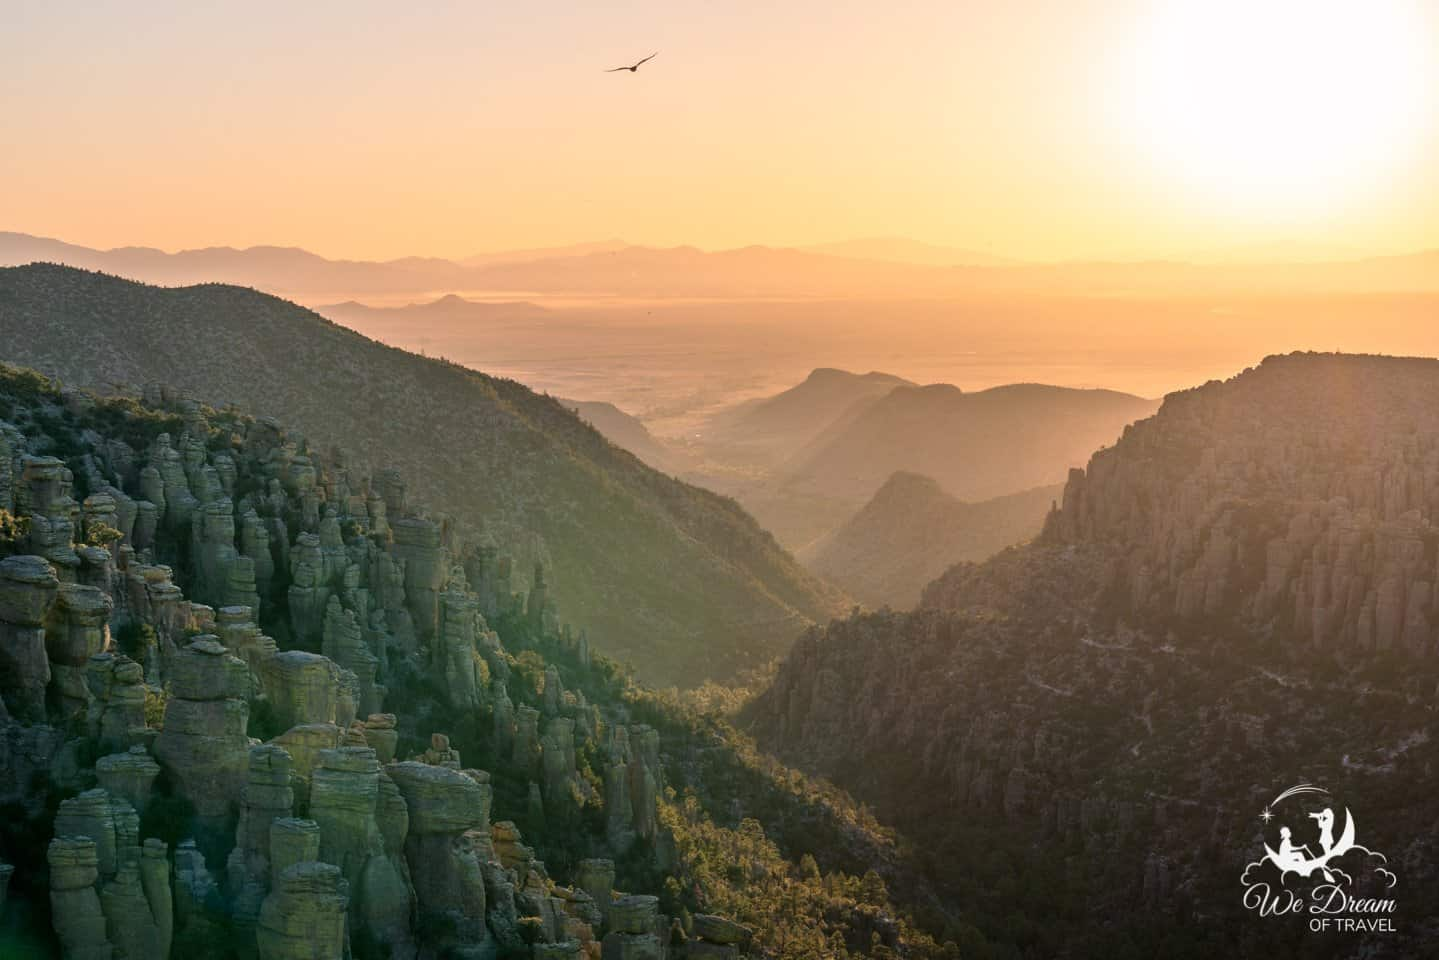 An eagle soars above the valley at sunset from Inspiration Point in Chiricahua National Monument.